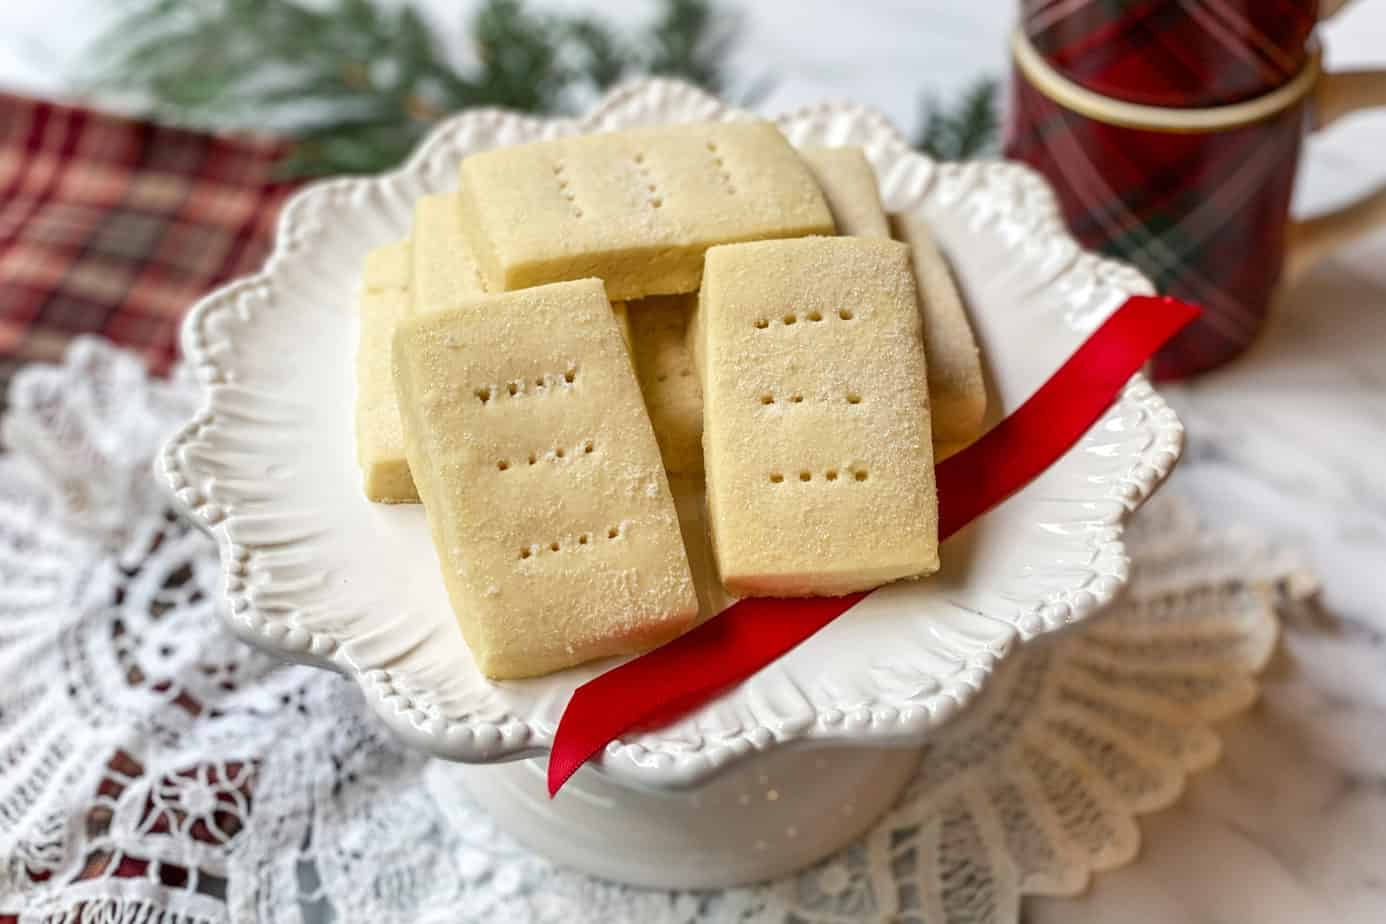 Shortbread cookies on a white platter with a red ribbon